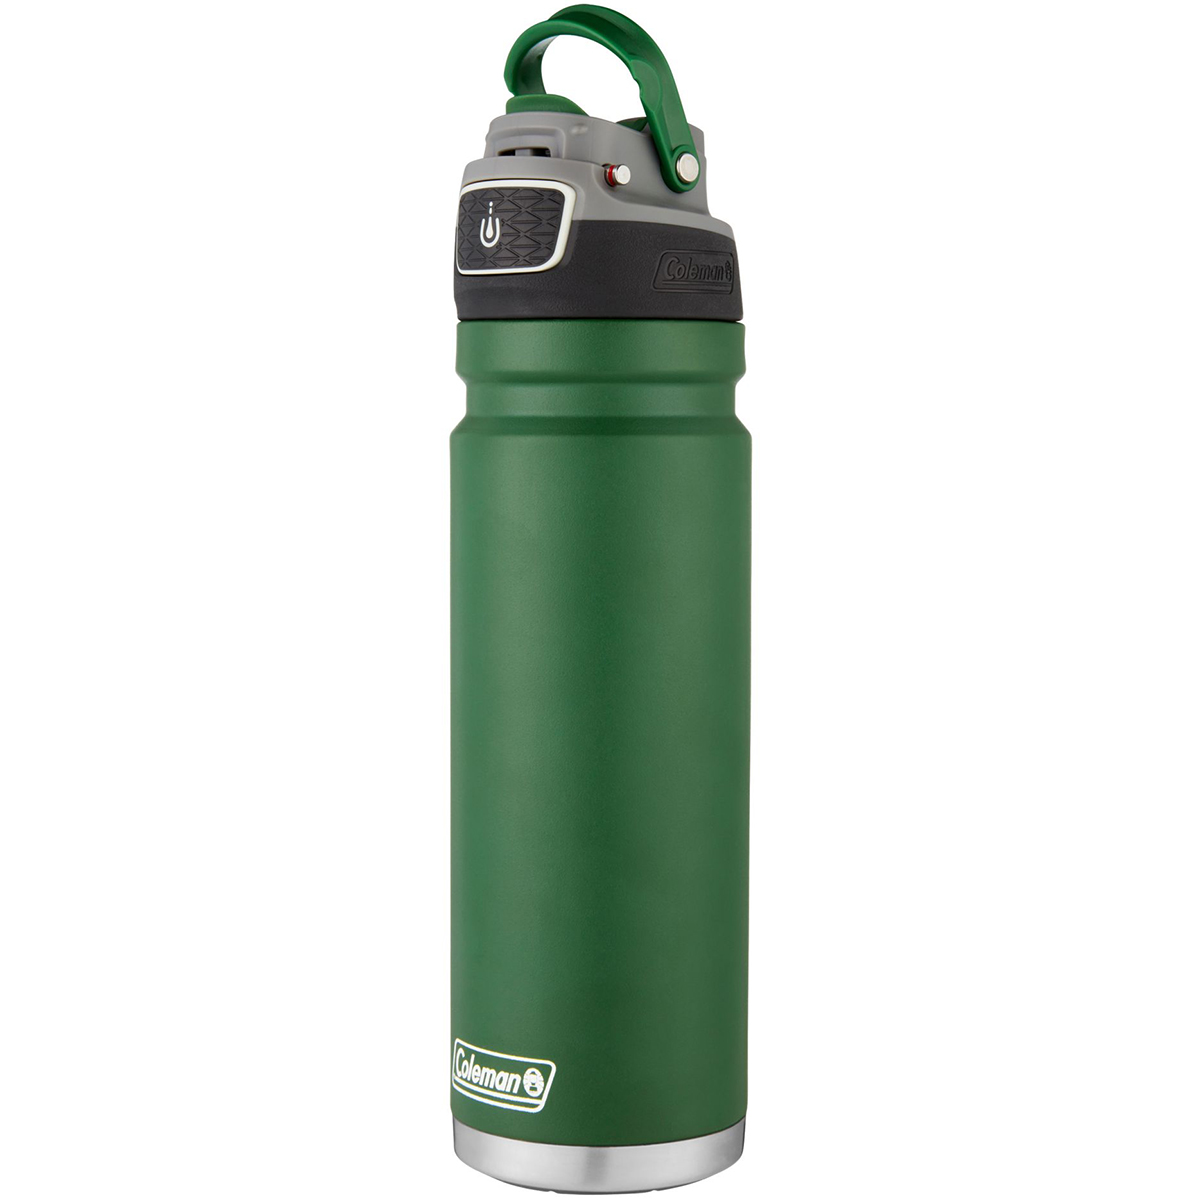 Coleman-24-oz-Free-Flow-Autoseal-Insulated-Stainless-Steel-Water-Bottle thumbnail 9